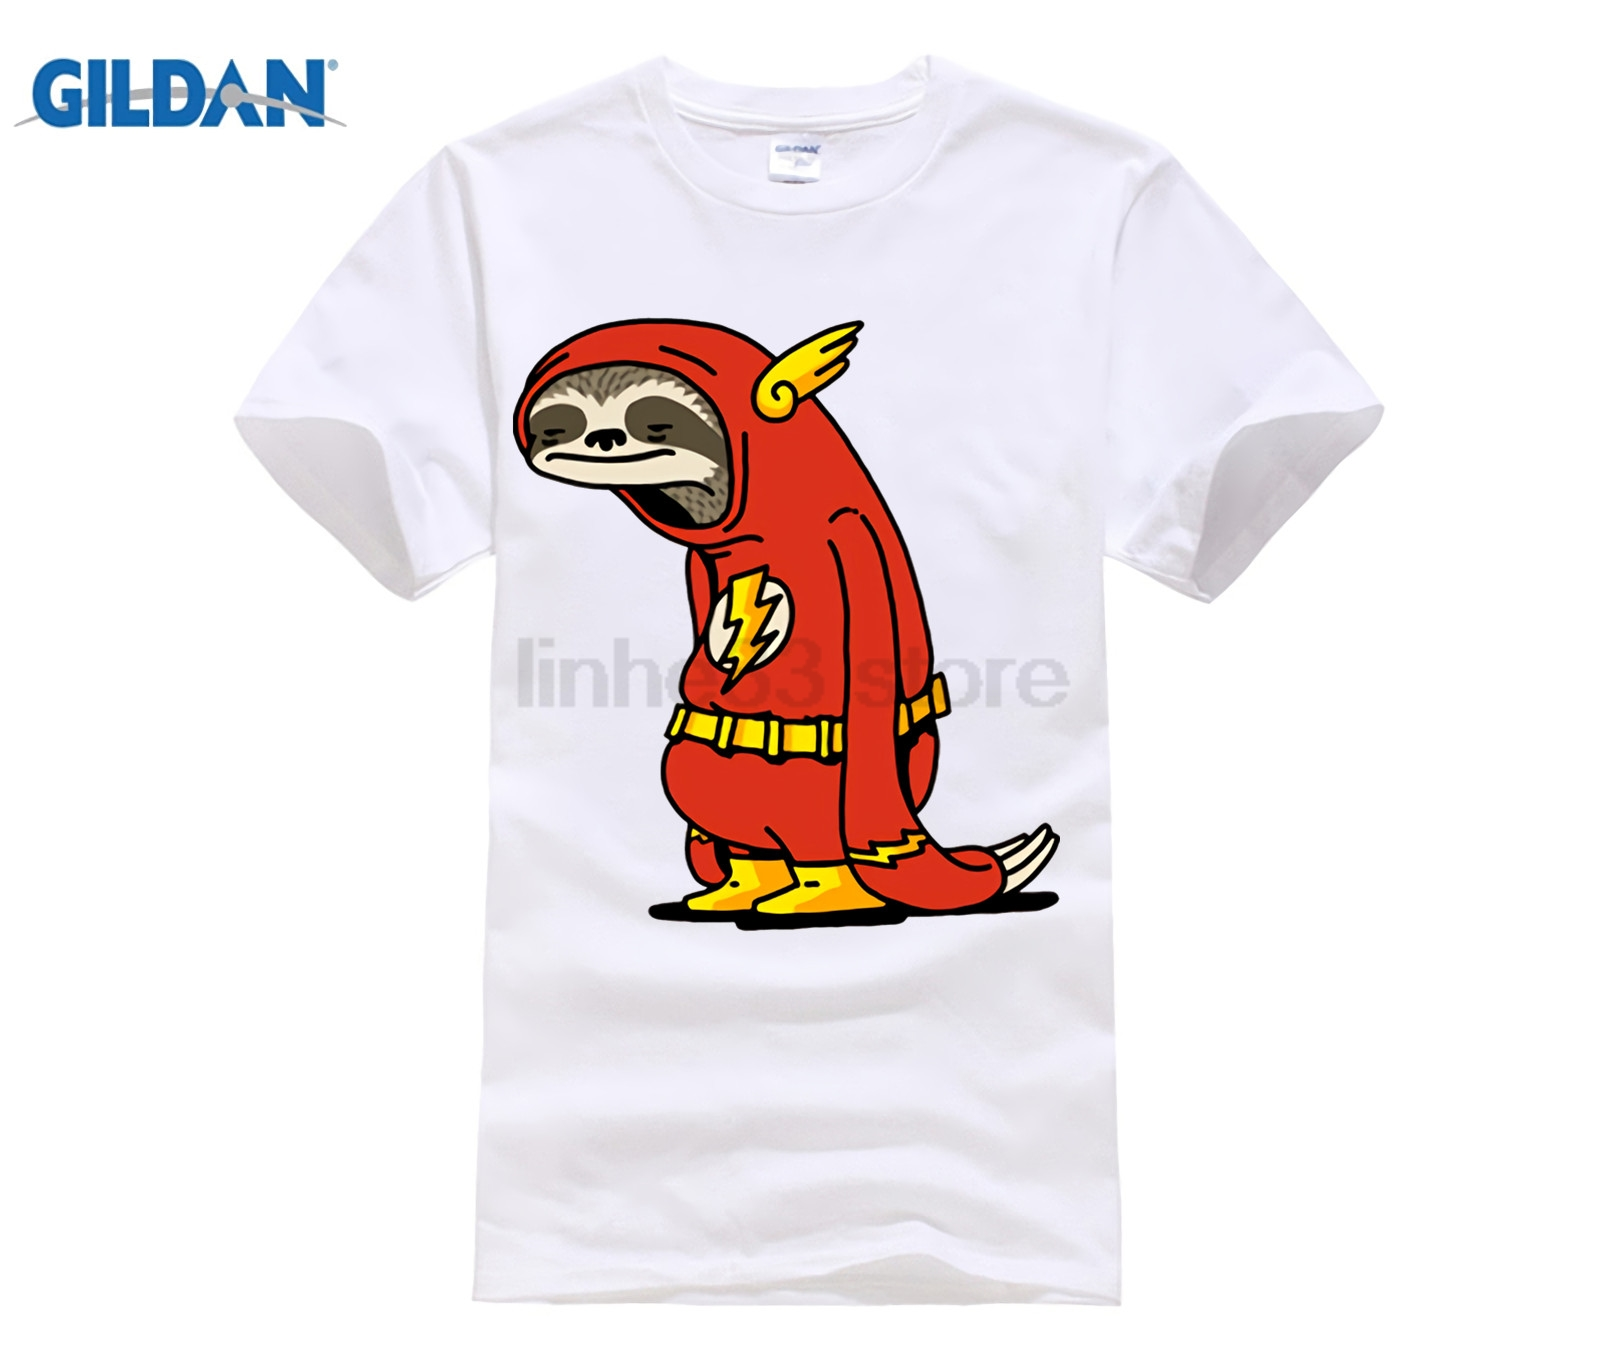 c0a79b2ba Funny Sloth The Flash T shirts men The Neutral T shirt male super hero Red  Sloth tshirt harajuku Tops 100% cotton Tees camisetas-in T-Shirts from Men's  ...